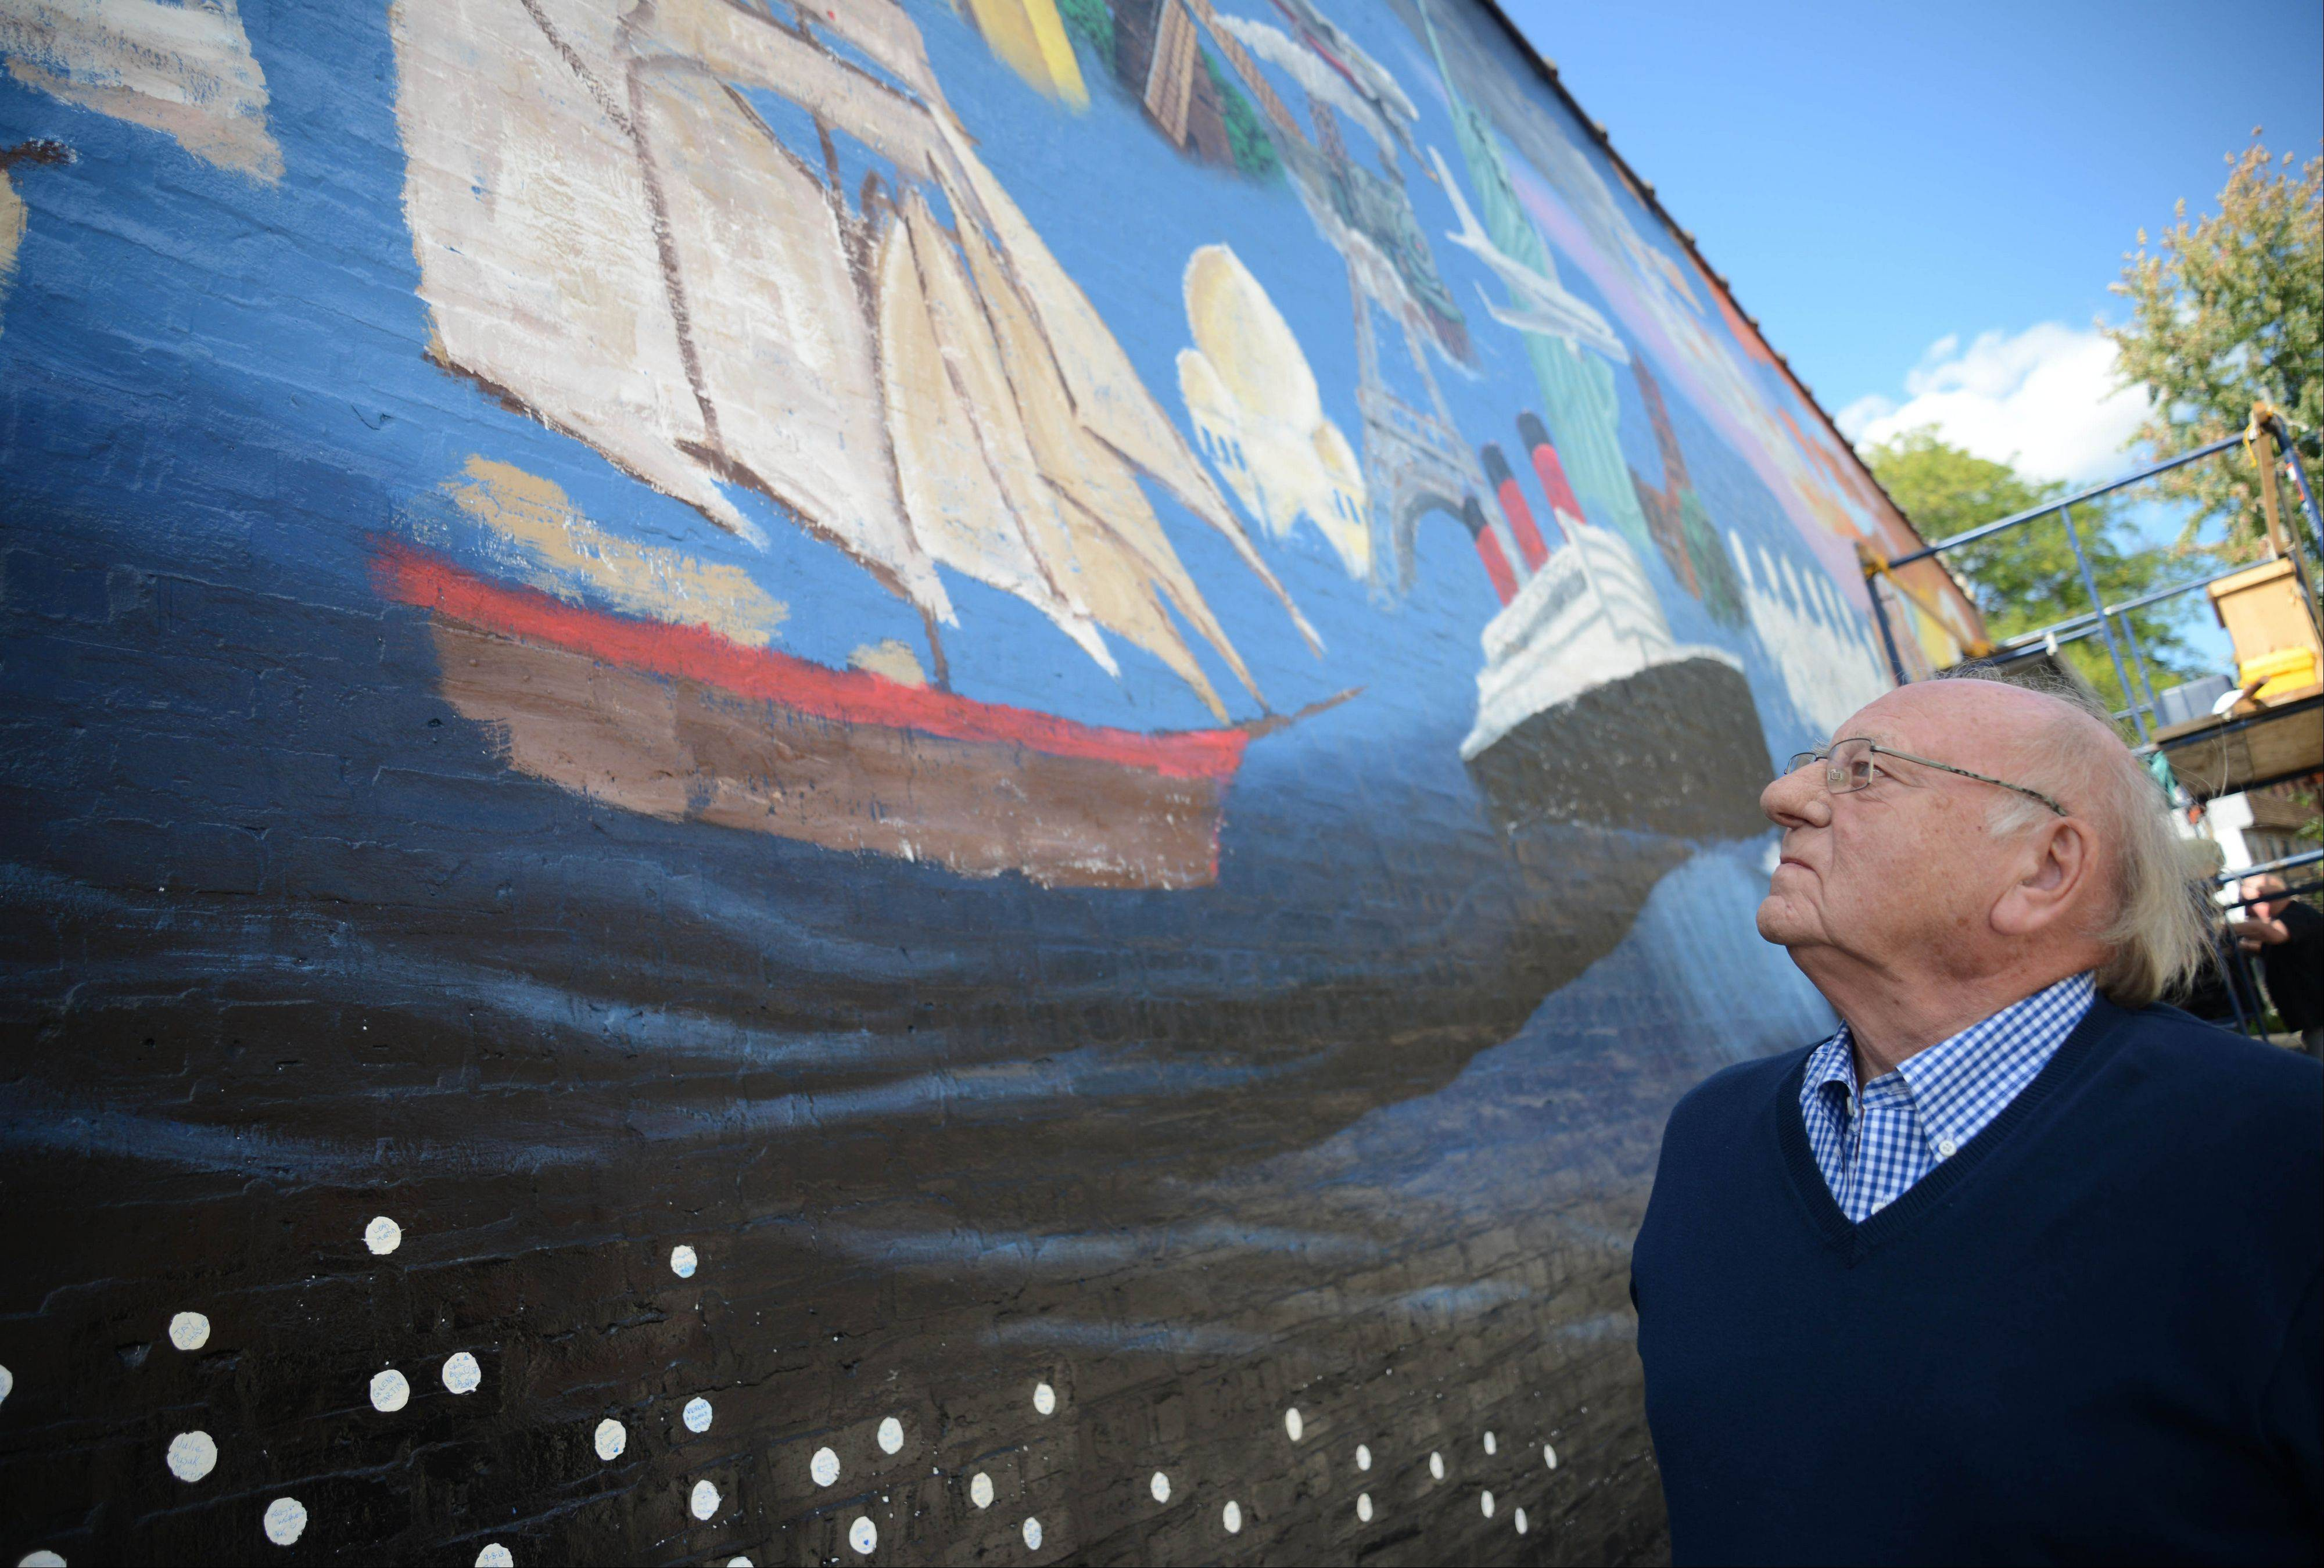 "Henry Schnabel of Wheaton examines the new mural, ""Pearls of the Universe"" unveiled in the village Sunday. The 70-foot mural, created by artist R.J. Ogren celebrates diversity in Wheaton. It was inspired by a poem written by Mehret Asgedom, who came to Wheaton as an Ethiopian refugee when she was a child."